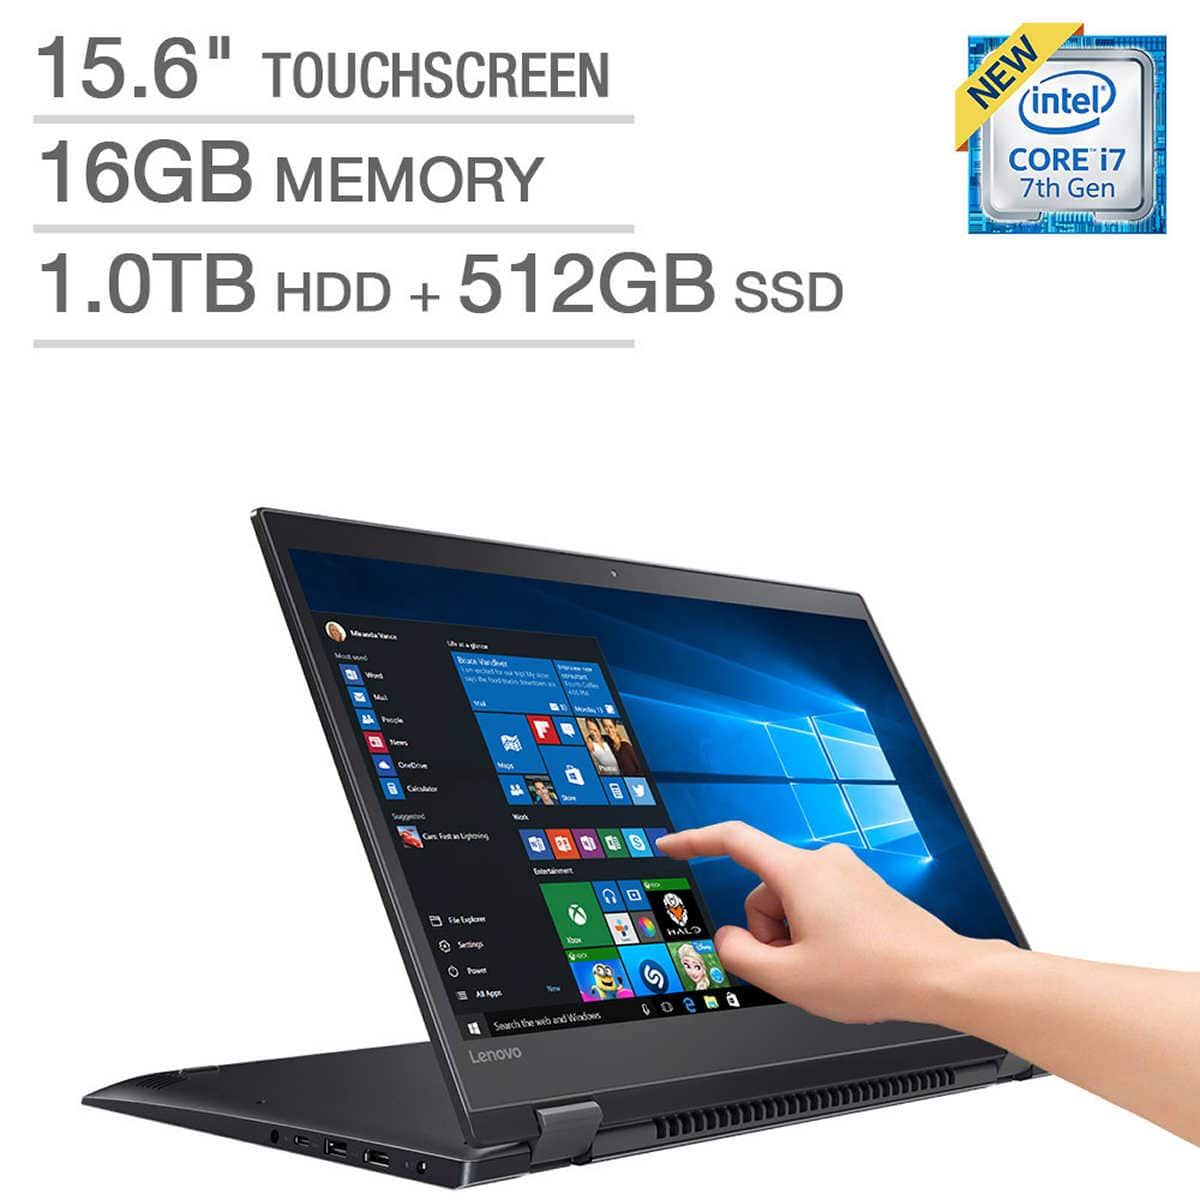 "Lenovo Flex 5 15 2-in-1: 15.6"" 4K IPS Touch, i7-7500U, 16GB DDR4, 512GB PCIe SSD, 1TB HDD, GT 940MX, Type-C, Win10, 4.4 lbs, @ $999 @ Costco"